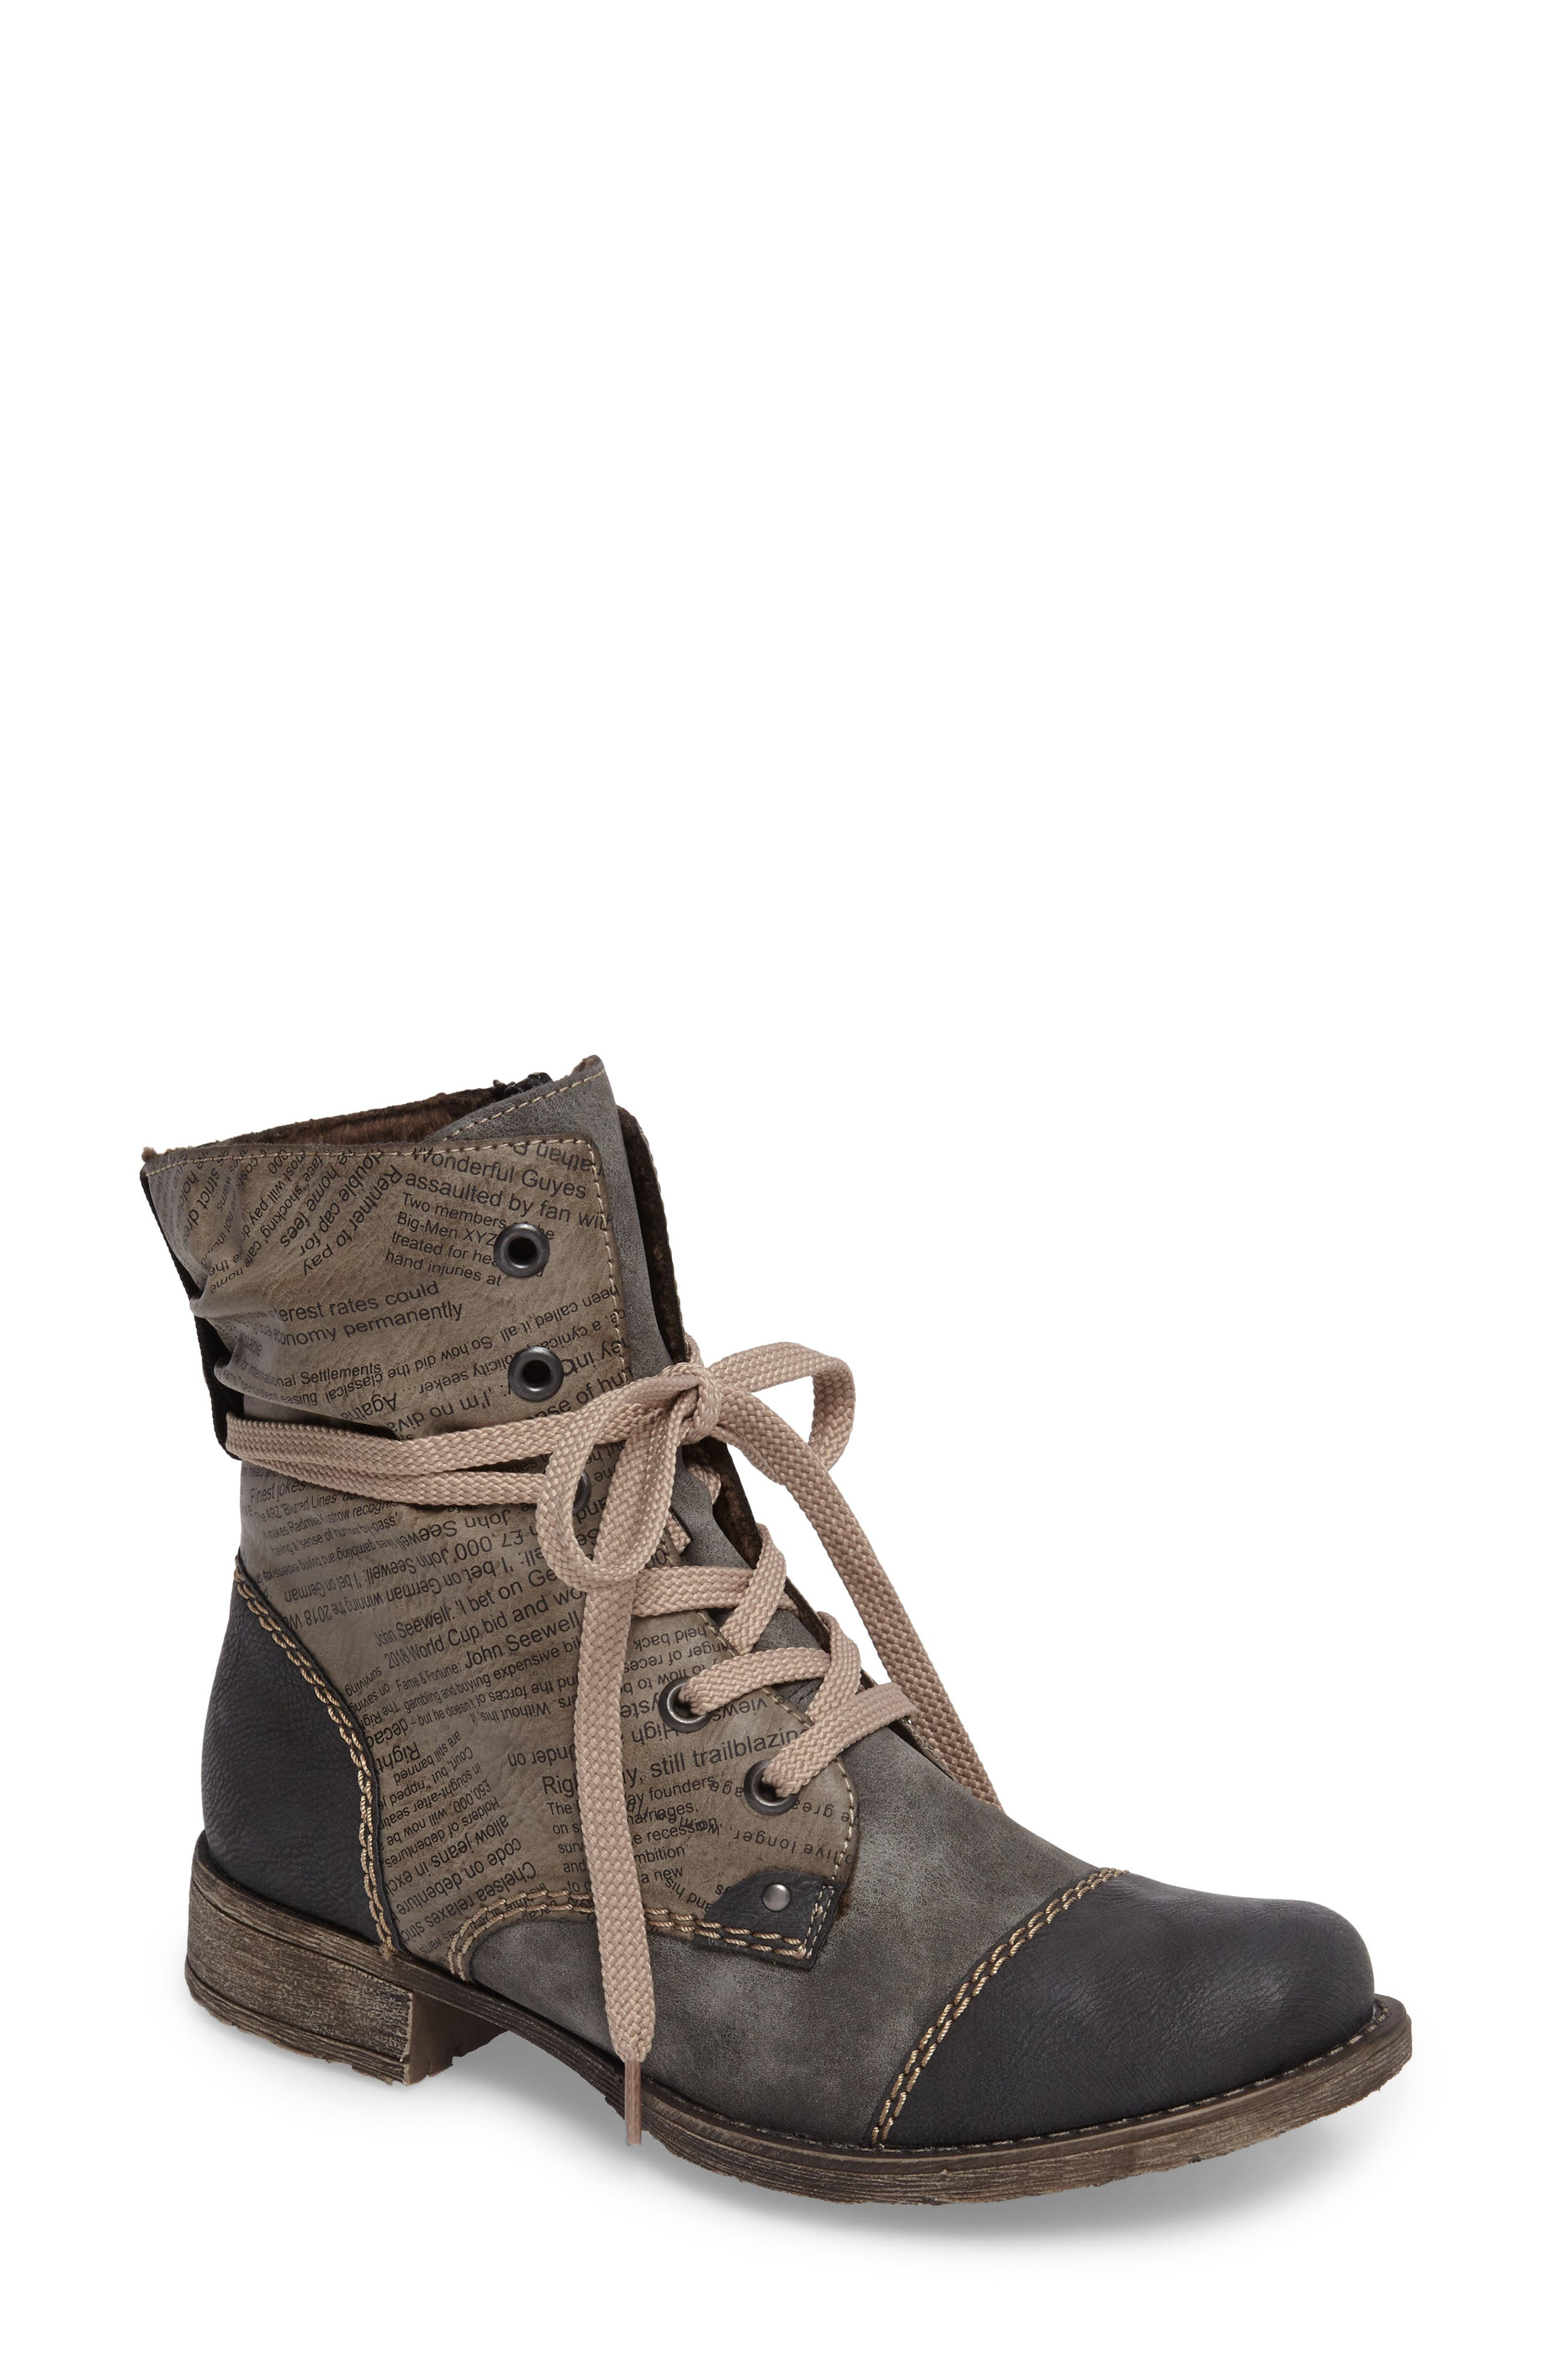 Rieker Antistress Payton 22 Lace-Up Boot Grey